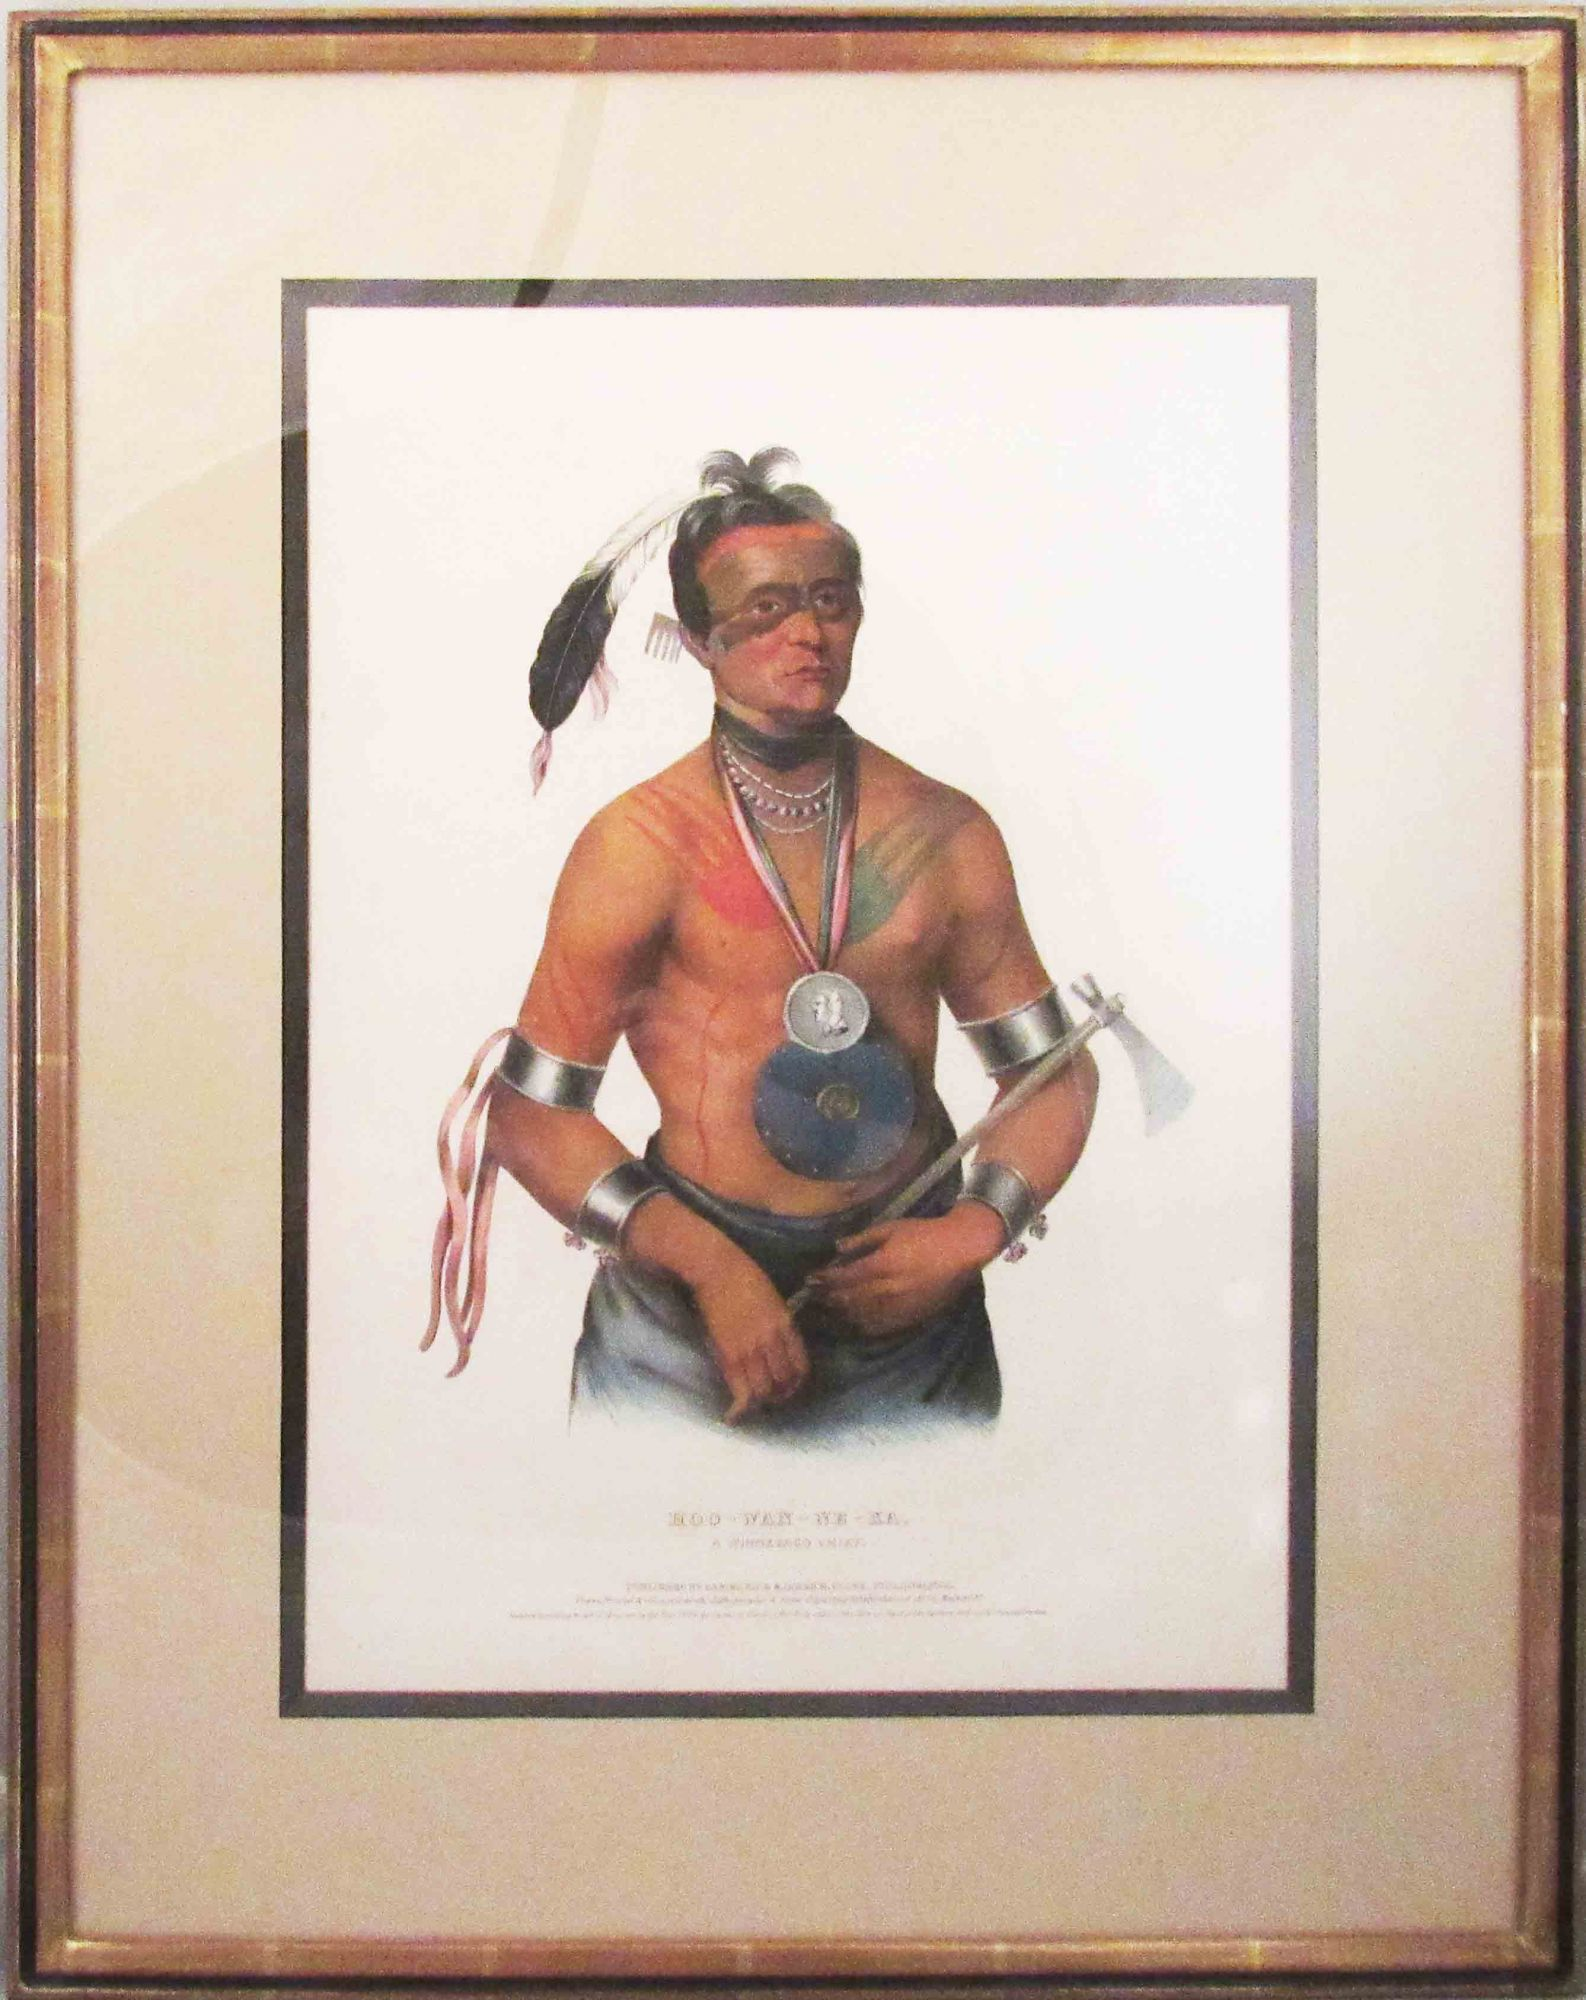 [Plate] HOO-WAN-NE-KA, A Winnebago Chief. [From HISTORY OF THE INDIAN TRIBES OF NORTH AMERICA]. Native American, Thomas L. McKenney, James Hall.